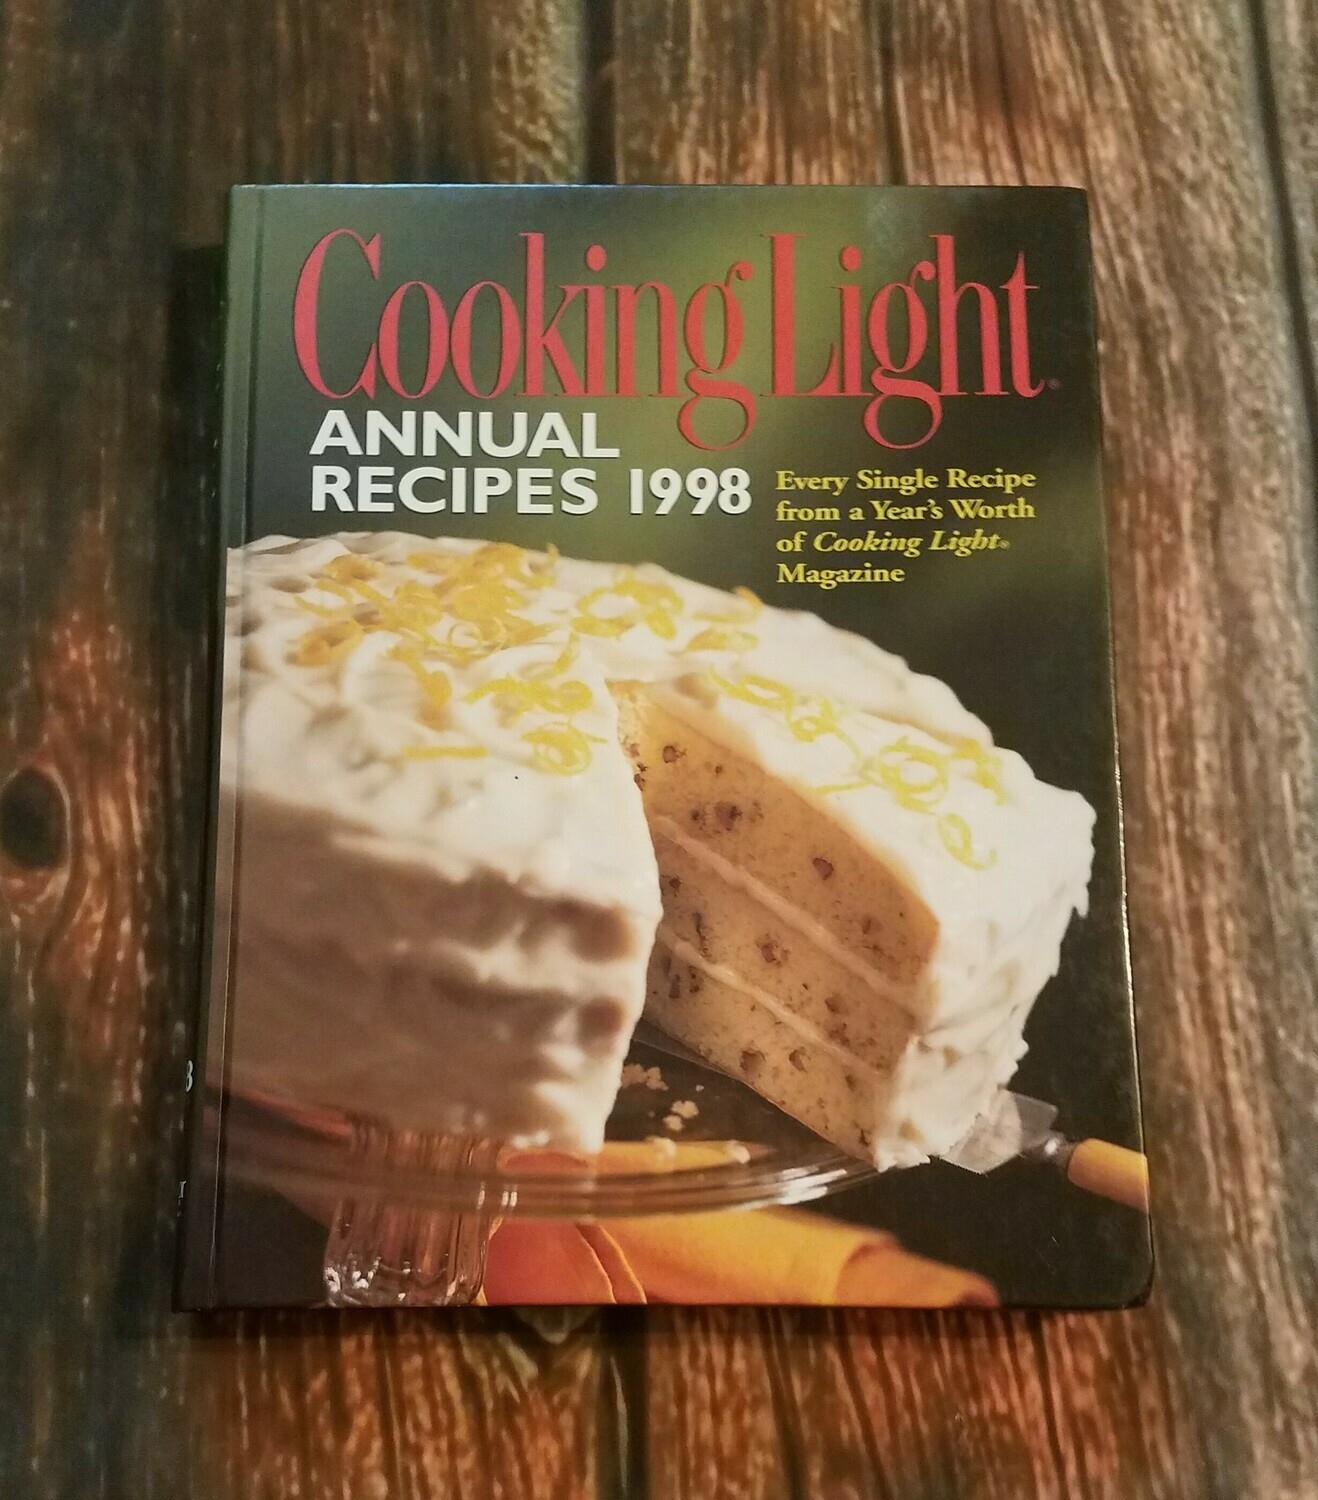 Cooking Light: Annual Recipes 1998 by Oxmoor House